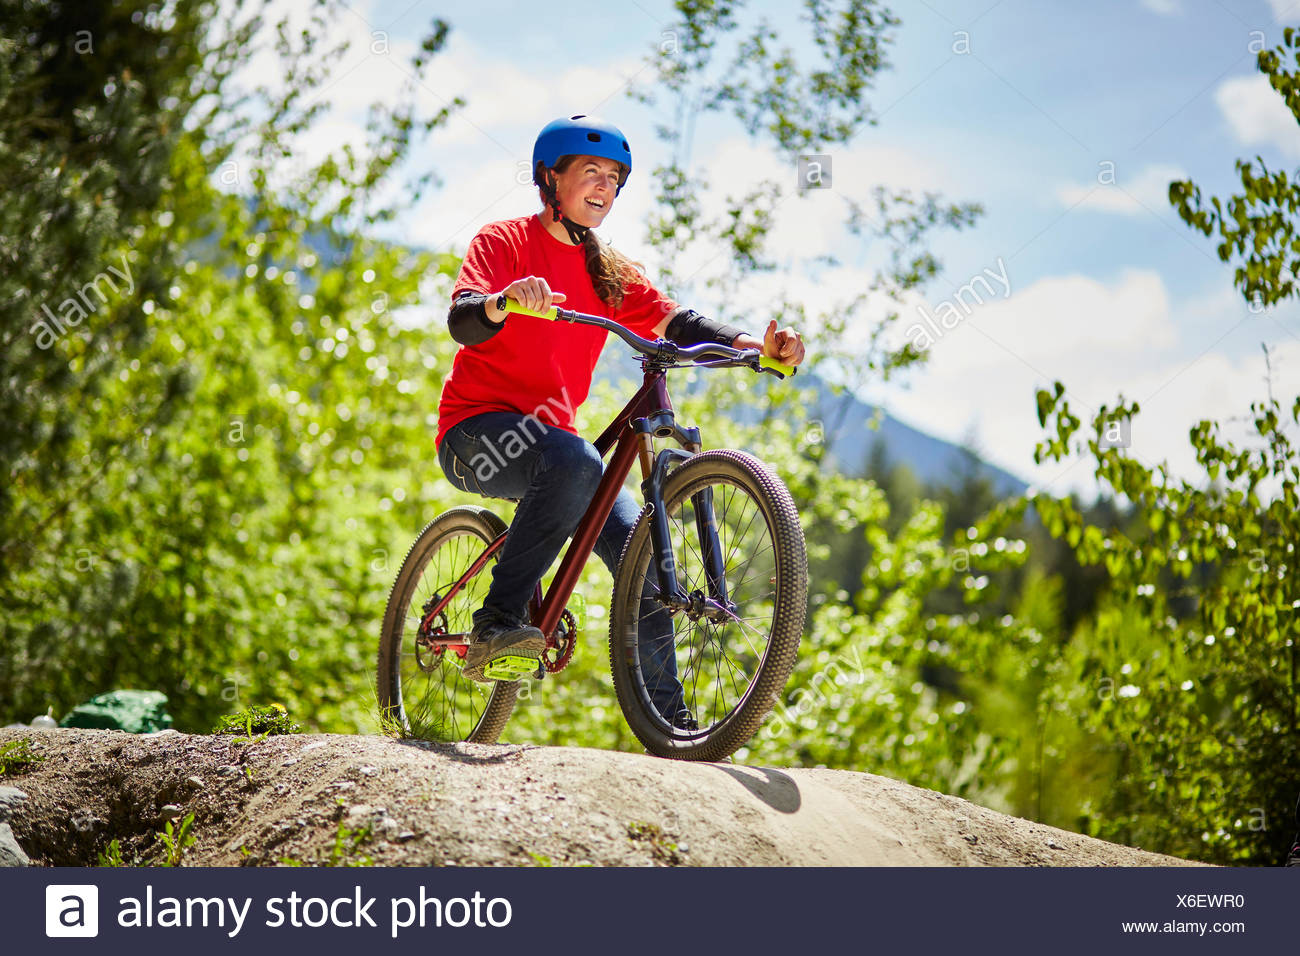 Young female bmx biker poised on edge of rock in forest - Stock Image